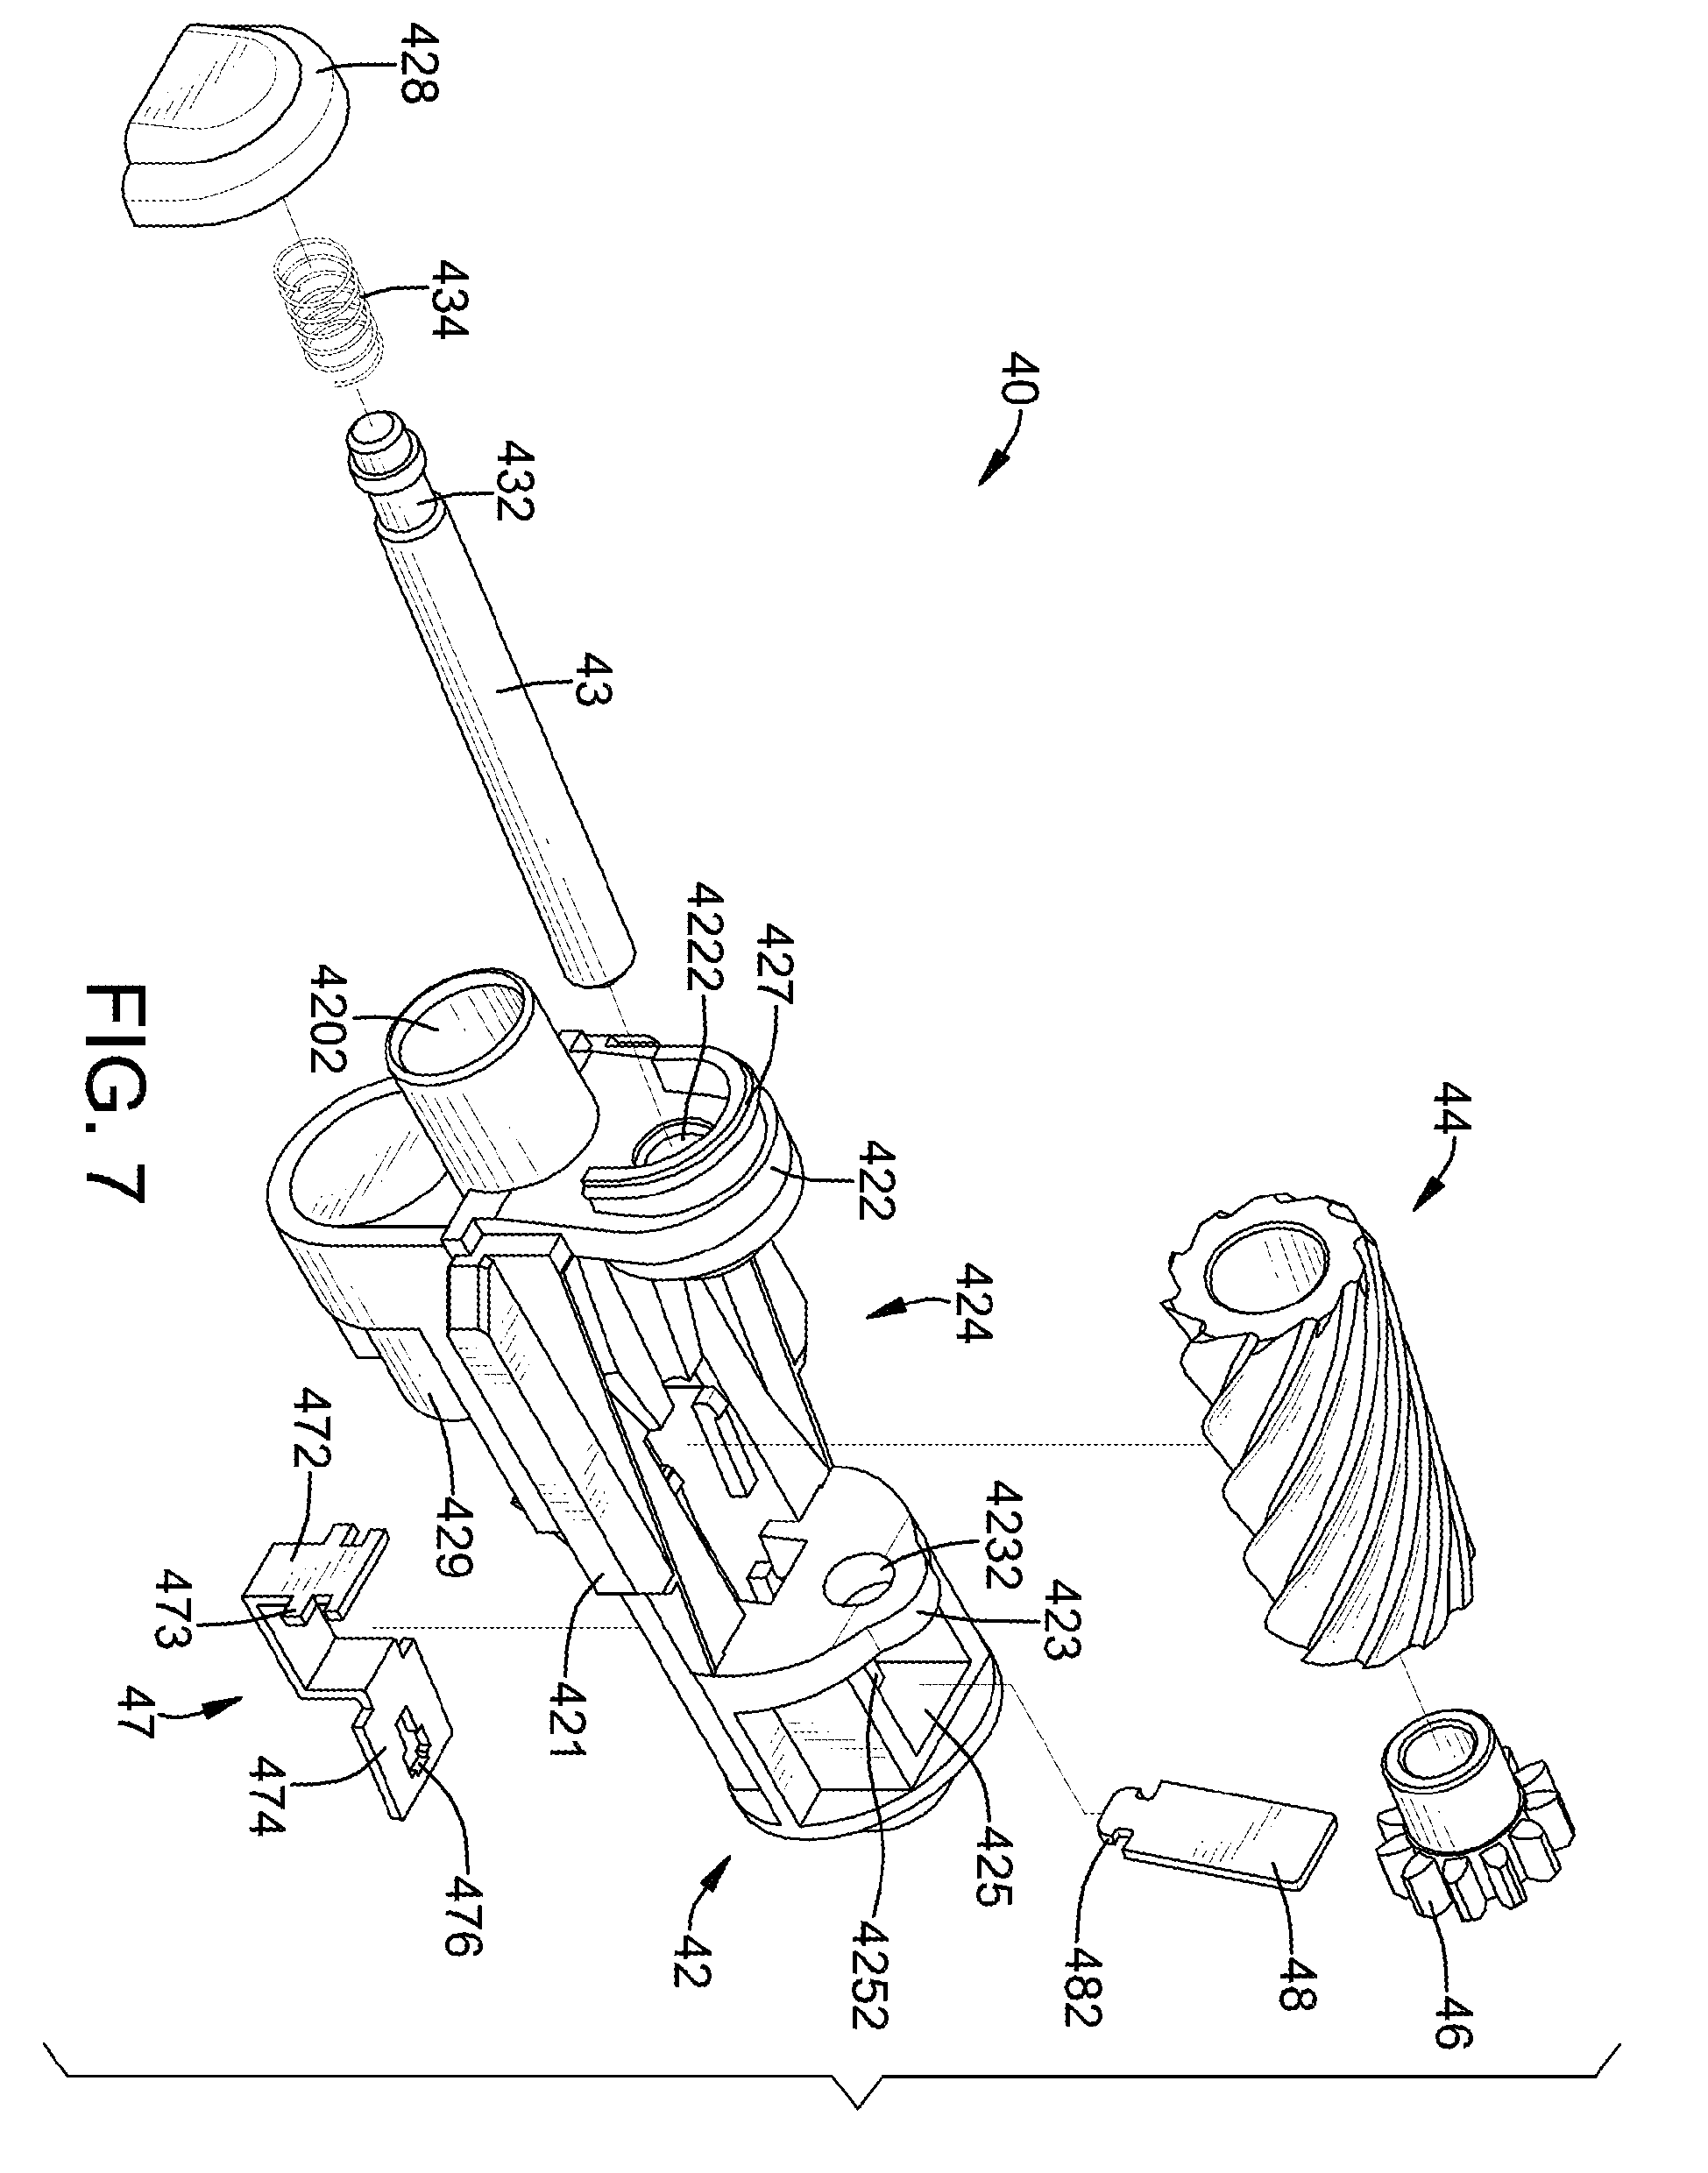 Diagram of electric motor parts